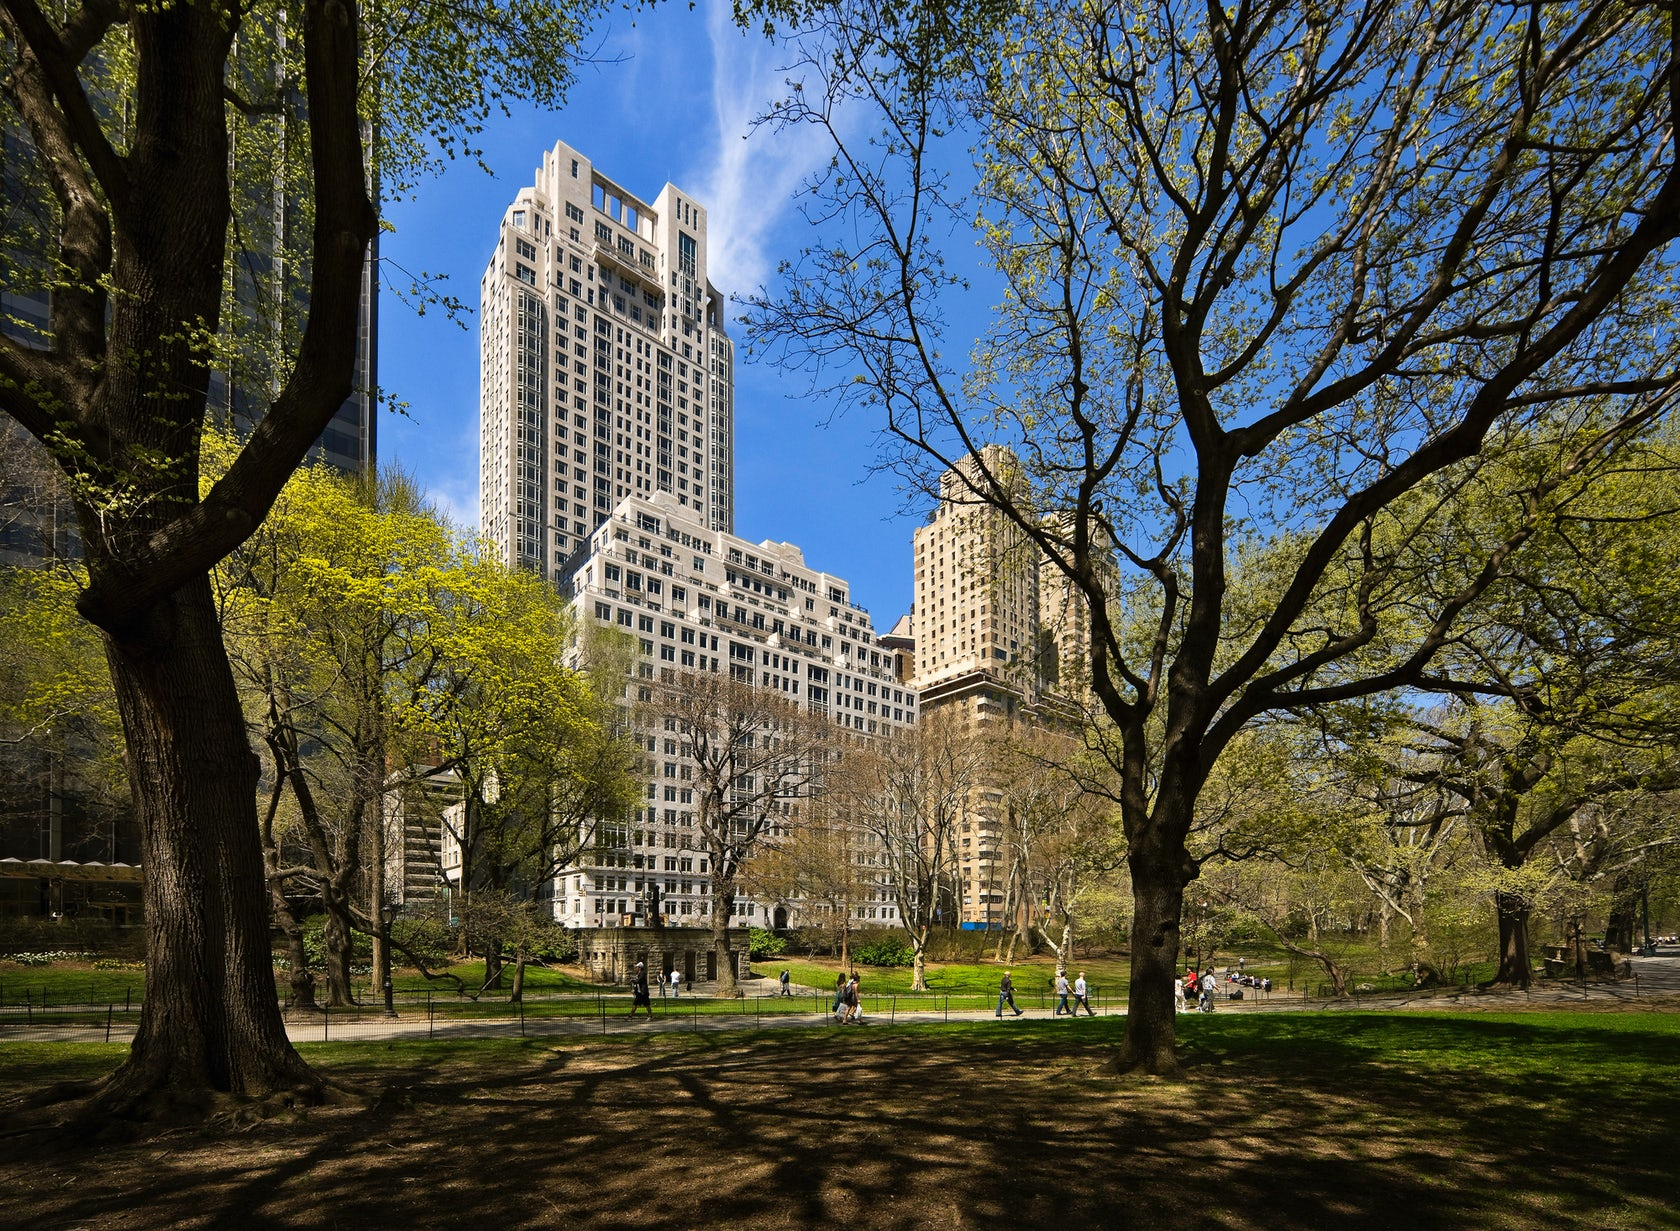 Fifteen central park west architizer for Central park apartments ny